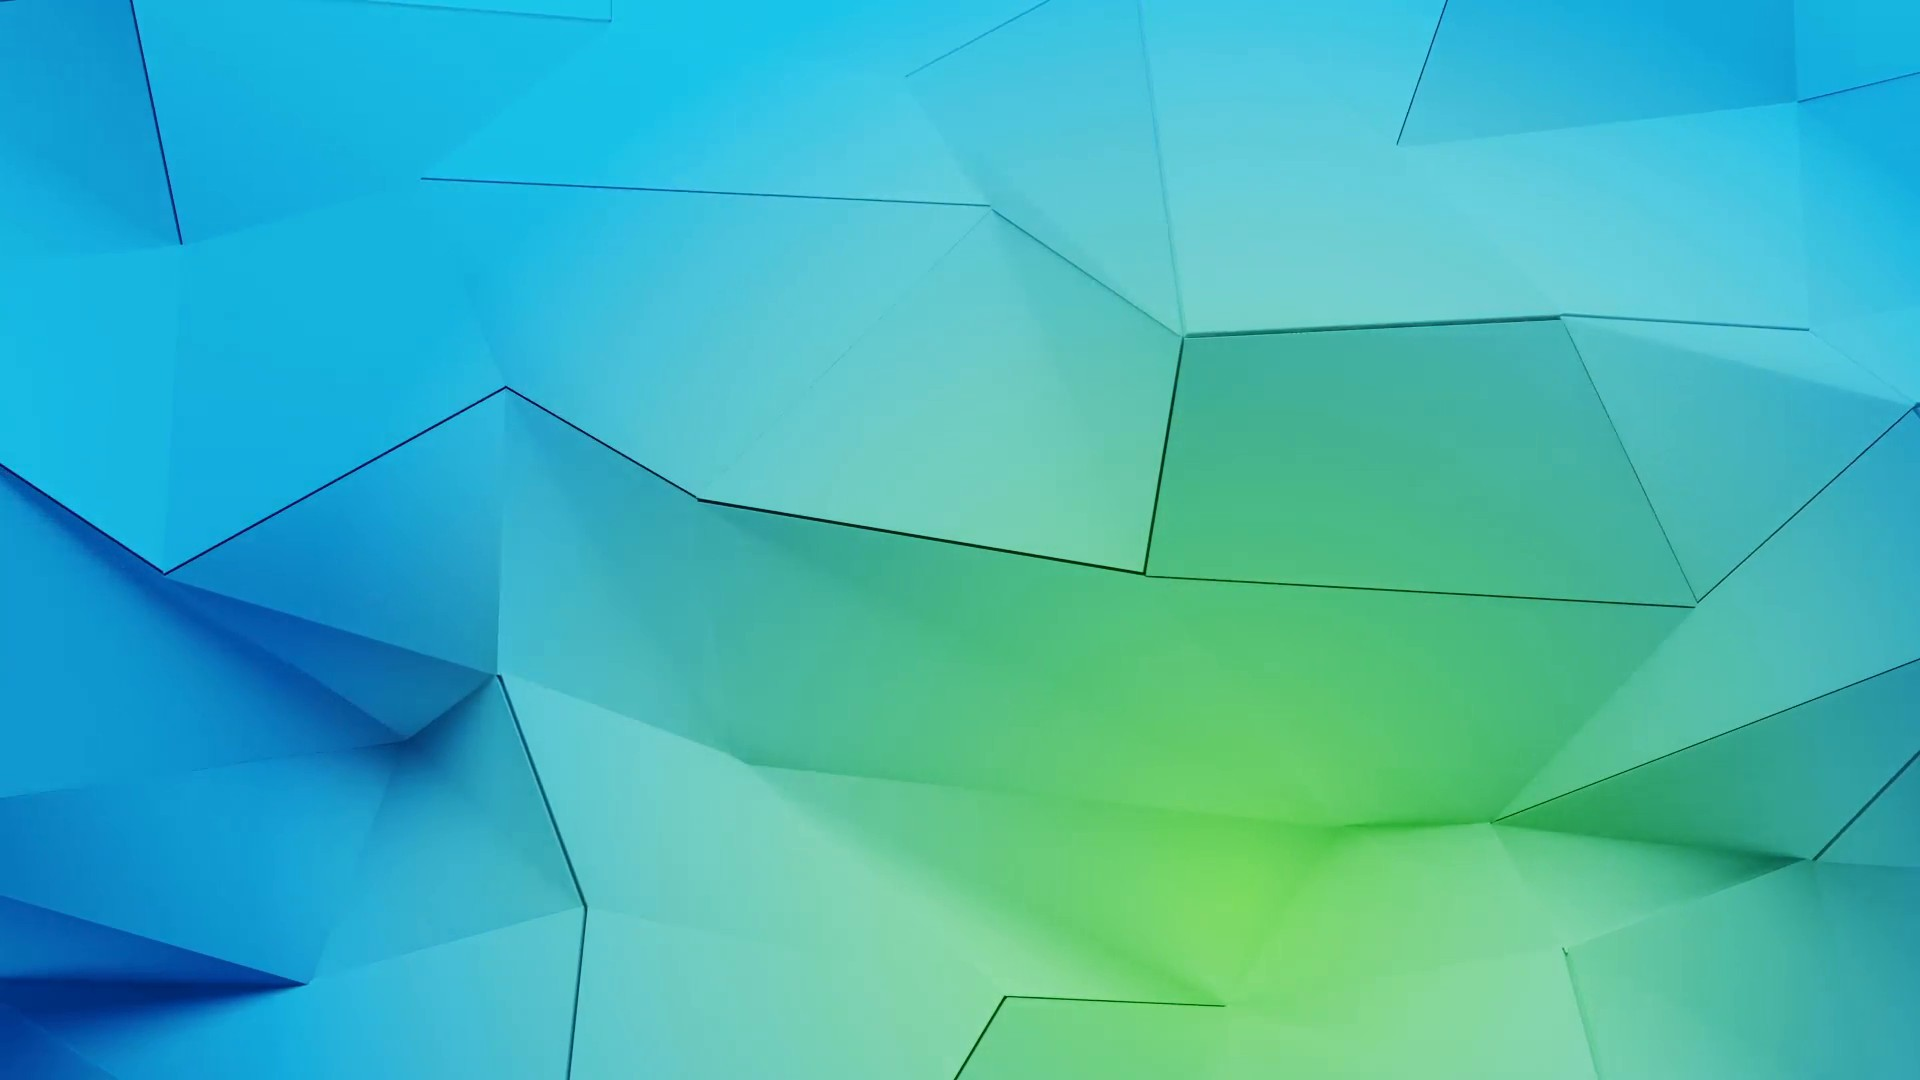 Geometric background download free awesome hd - Geometric desktop background ...